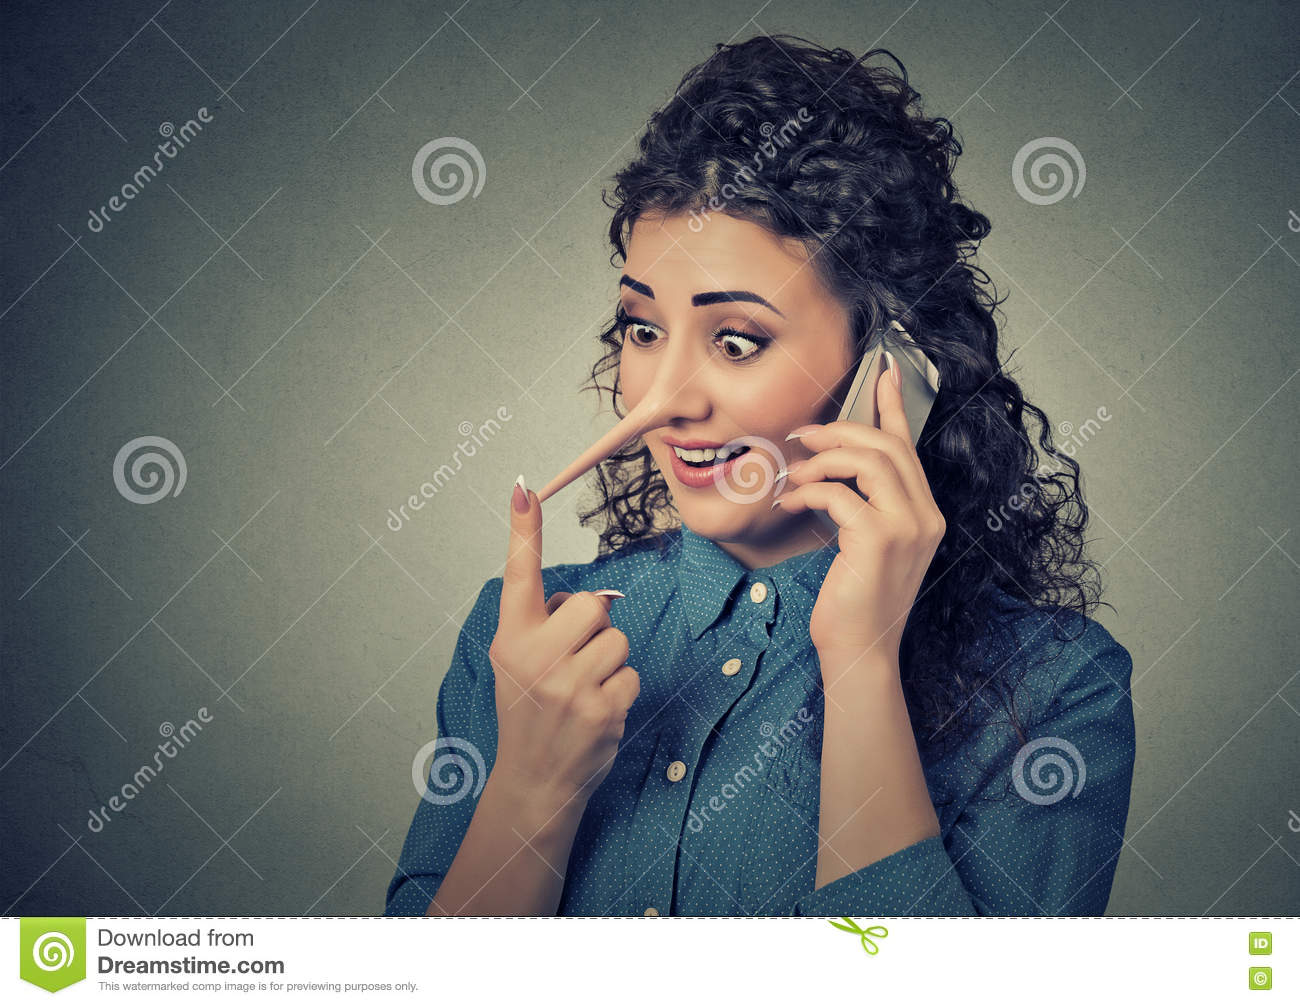 Customer support liar with long nose. Woman talking on mobile phone telling lies